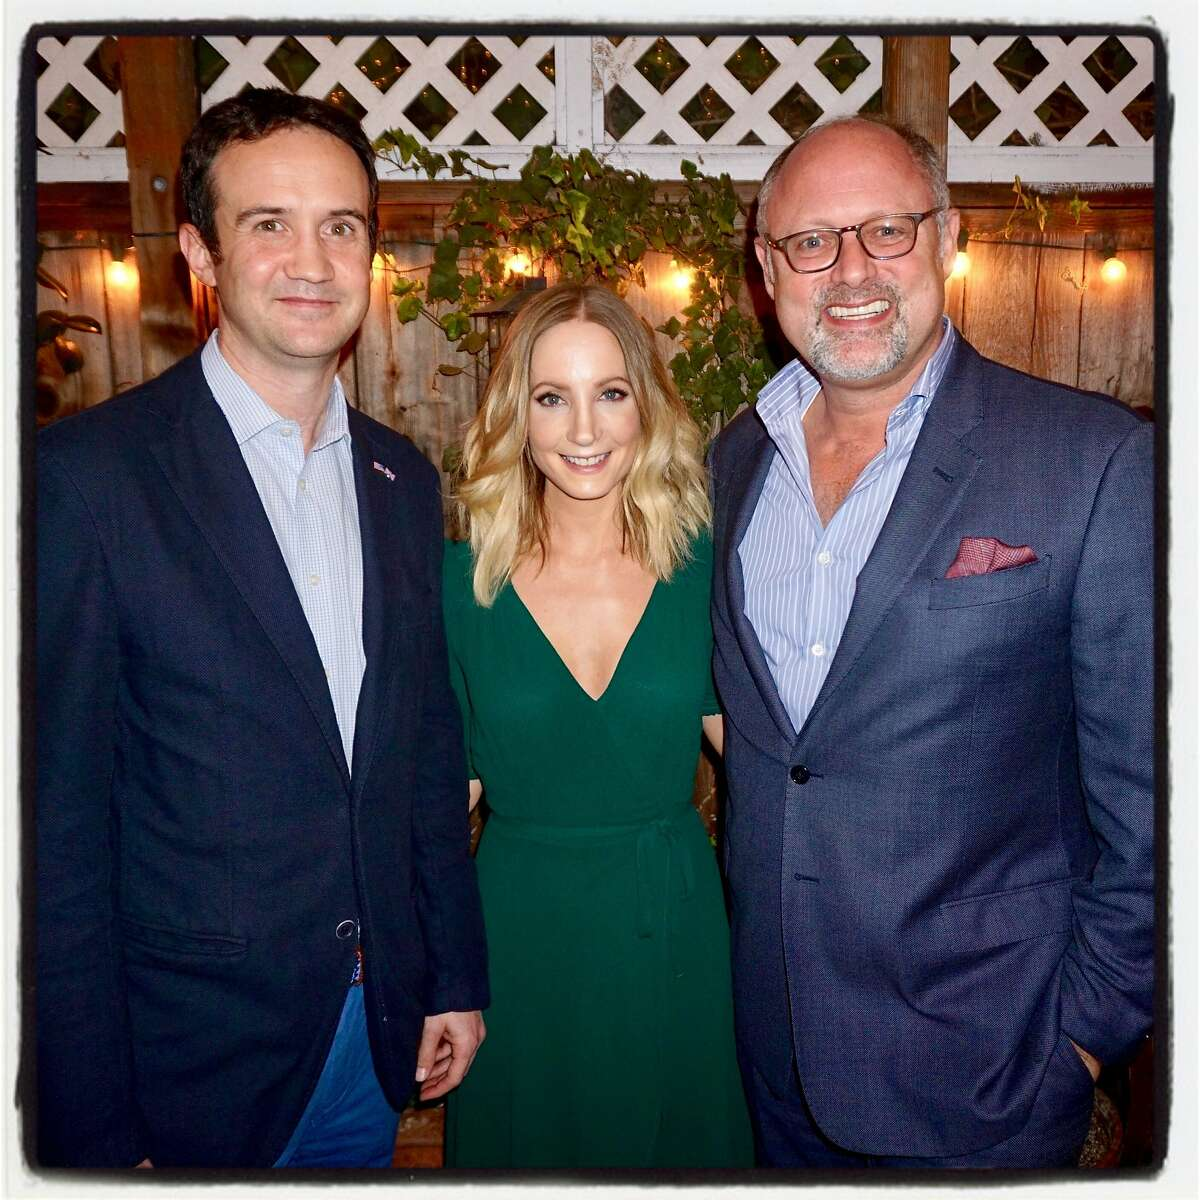 British Consul General Andrew Whittaker (left), actress Joanne Froggat and Jonathan Moscone at Magic Flute restaurant. Feb. 16, 2018.